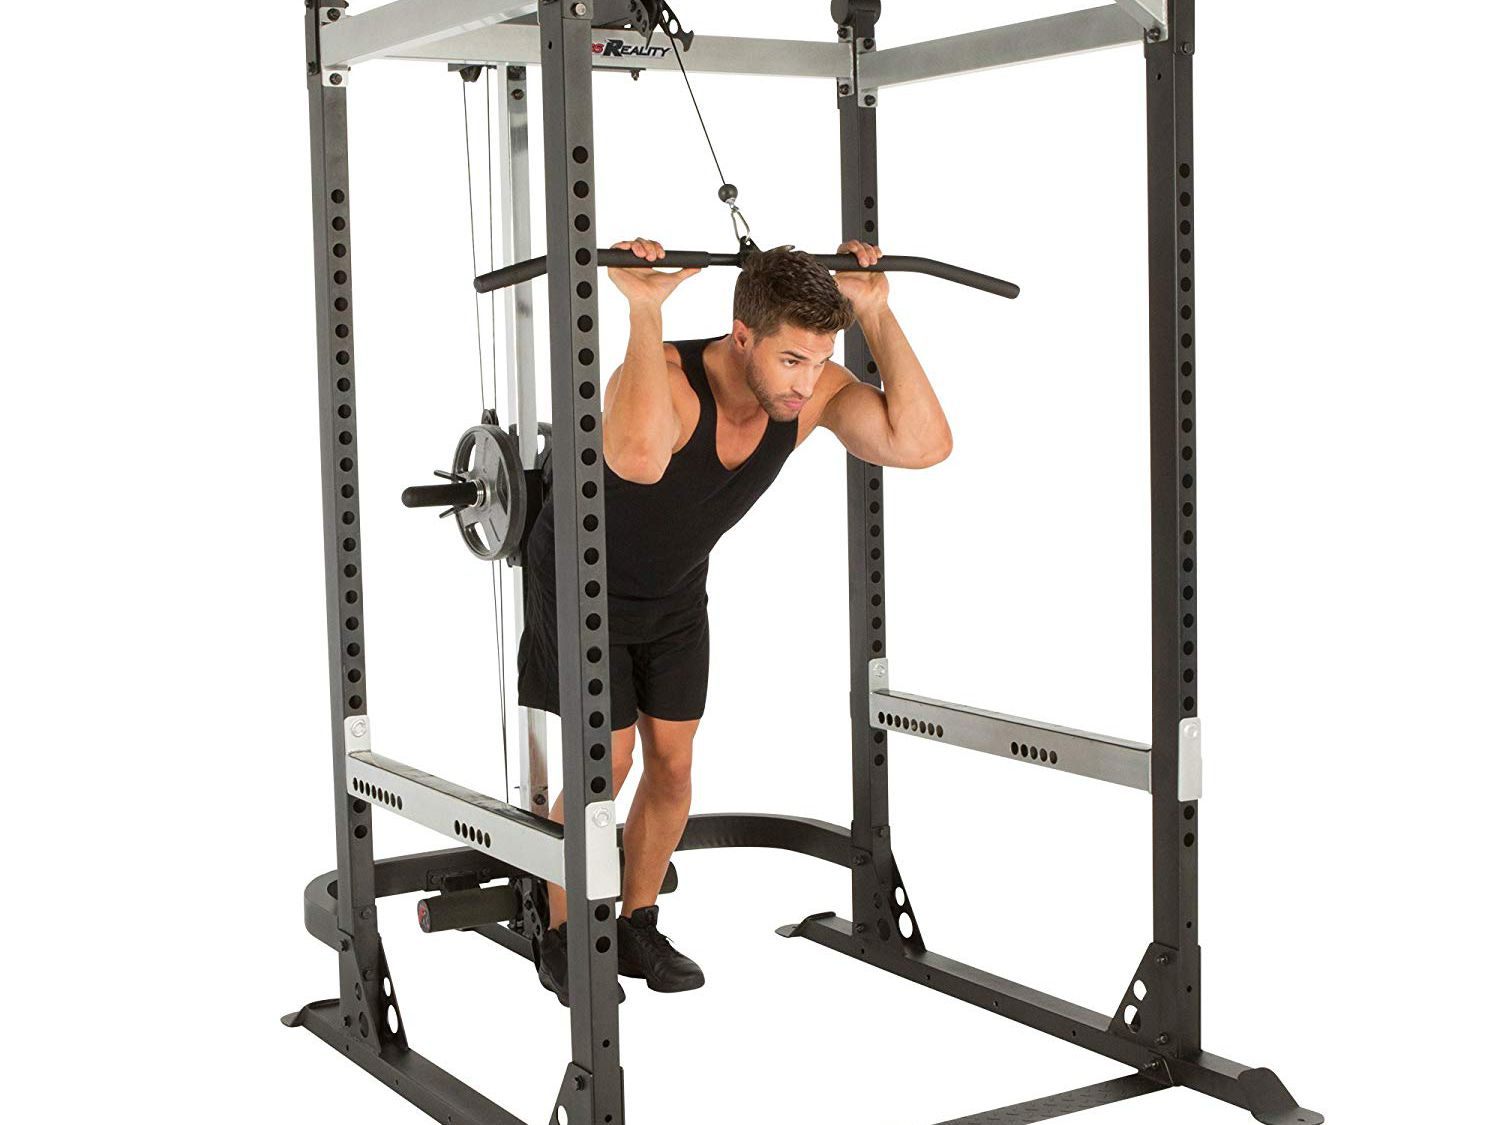 Multi-Grip Pull-up Bar and Dip Handle Vanswe Power Rack Power Cage Home Gym Equipment Exercise Stand Olympic Squat Cage with LAT Pull Attachment